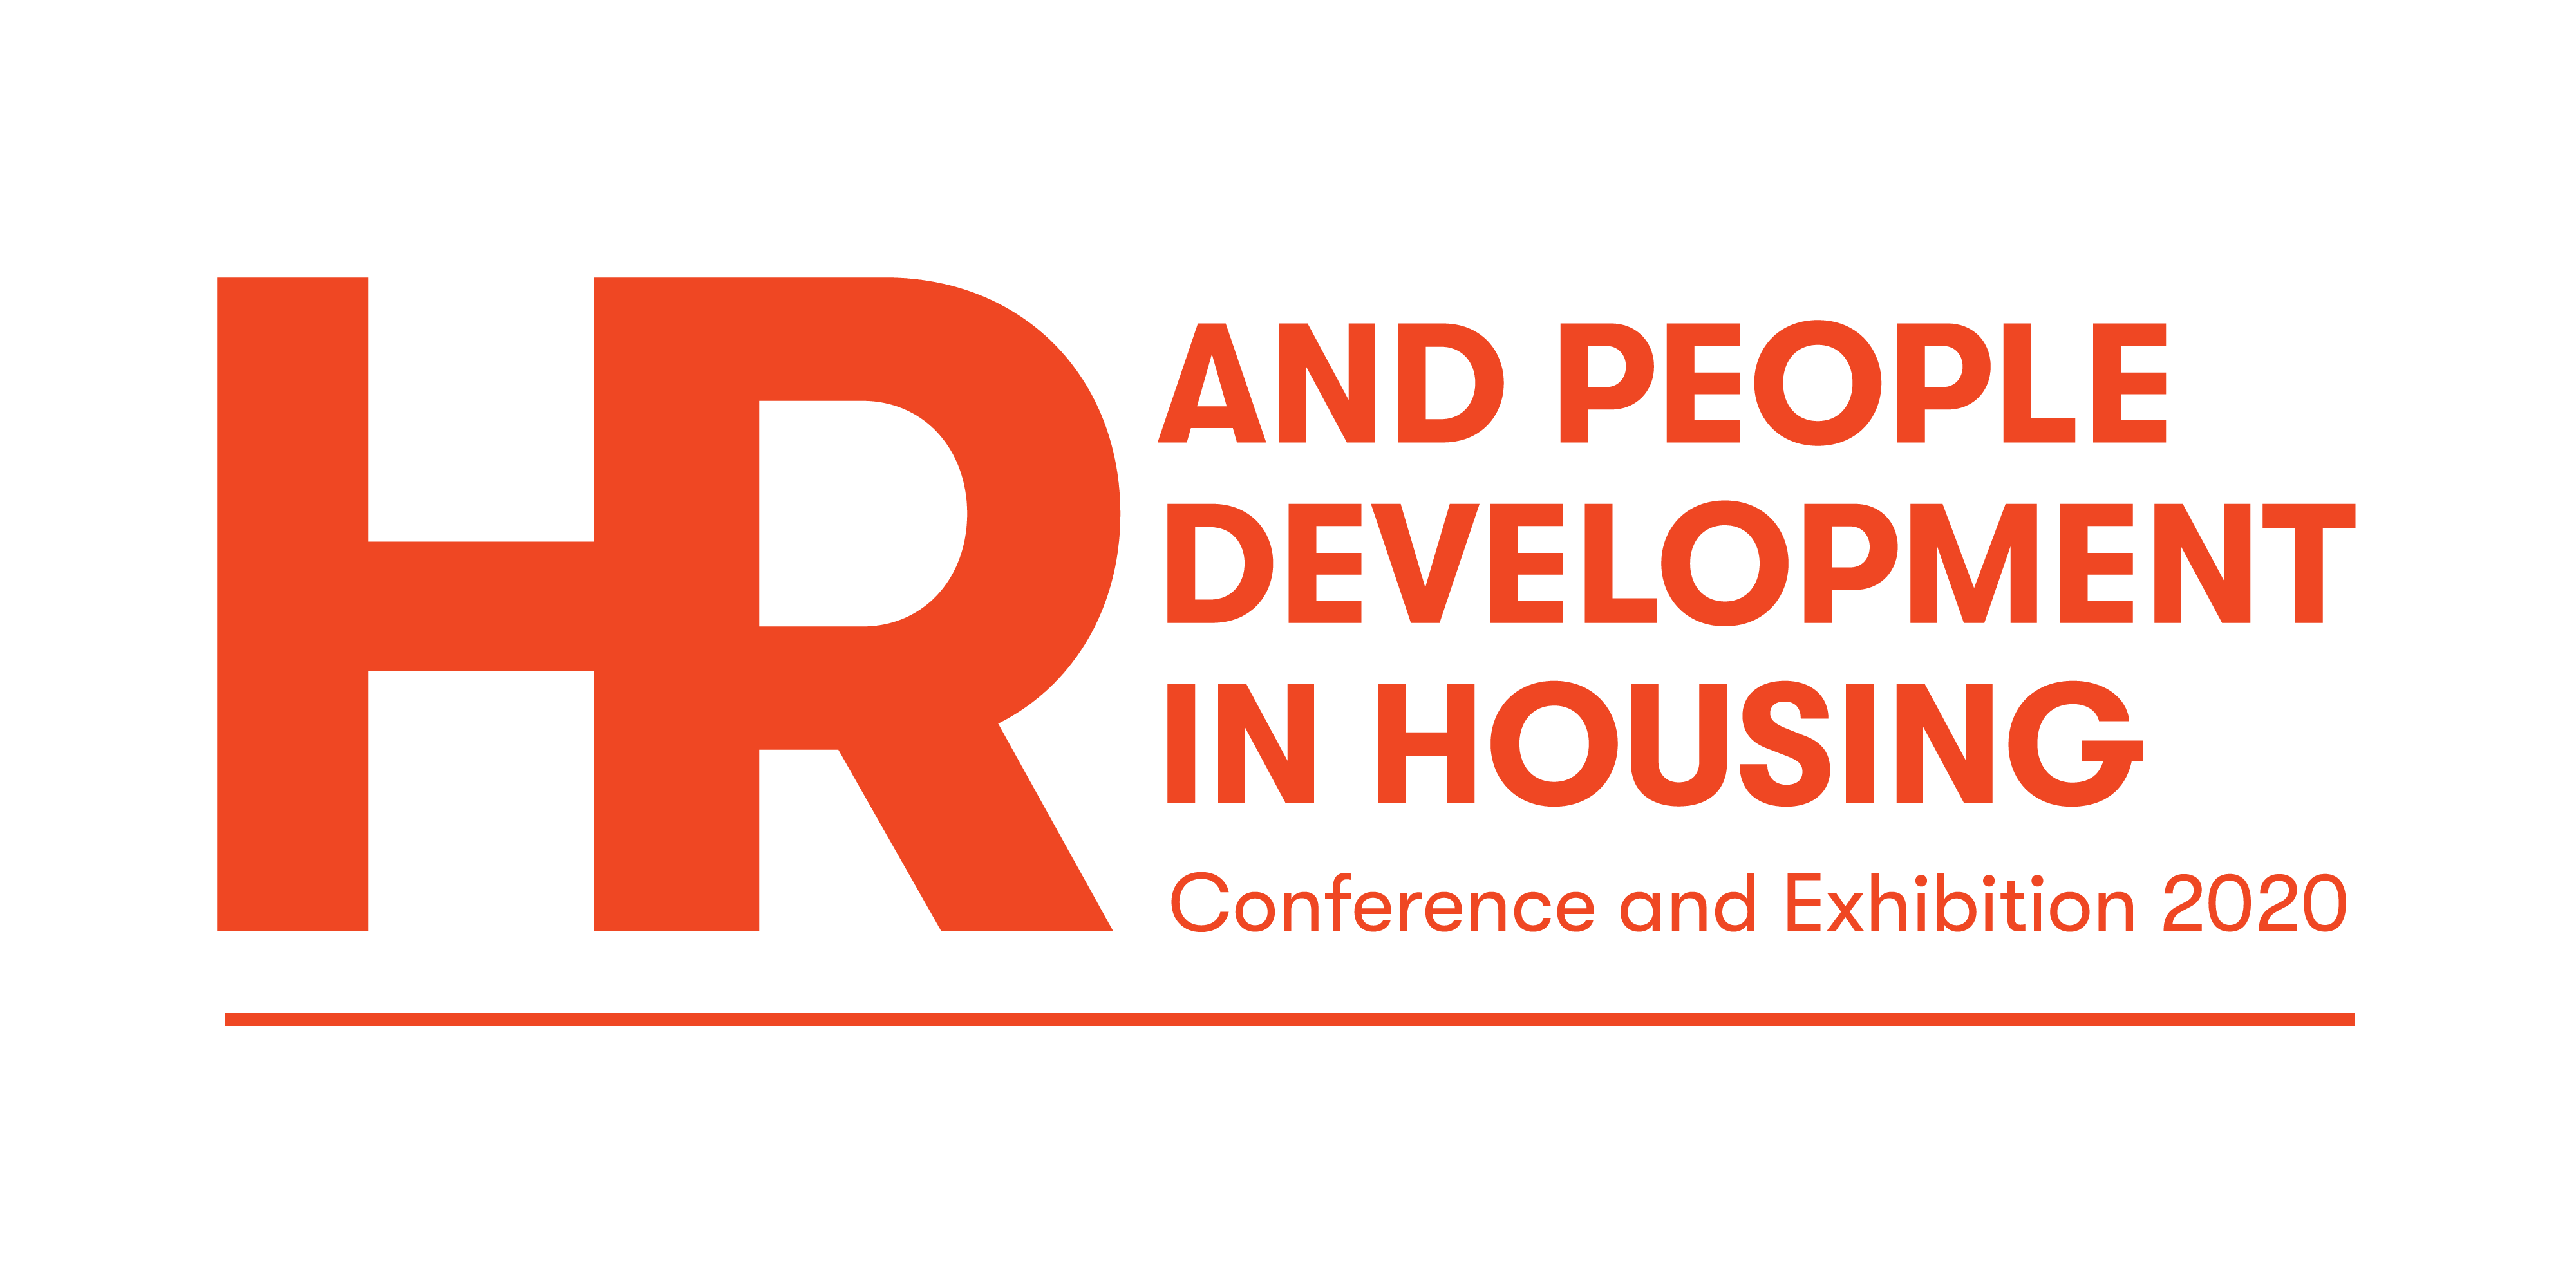 HR and People Development in Housing Conference and Exhibition 2020